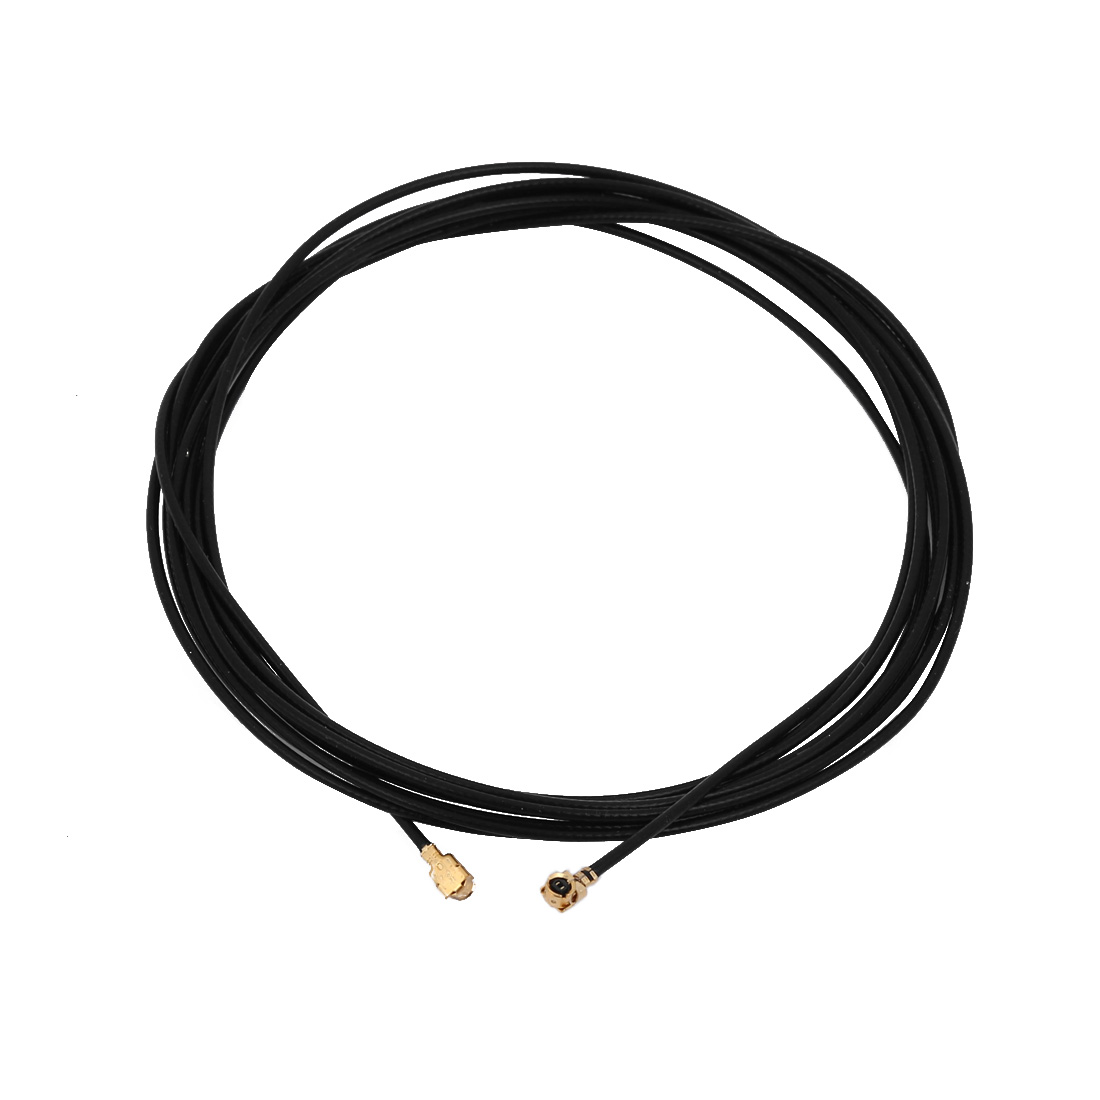 RF1.13 IPEX 1.0 to IPEX 1.0 Antenna WiFi Pigtail Cable 200cm Length for Router